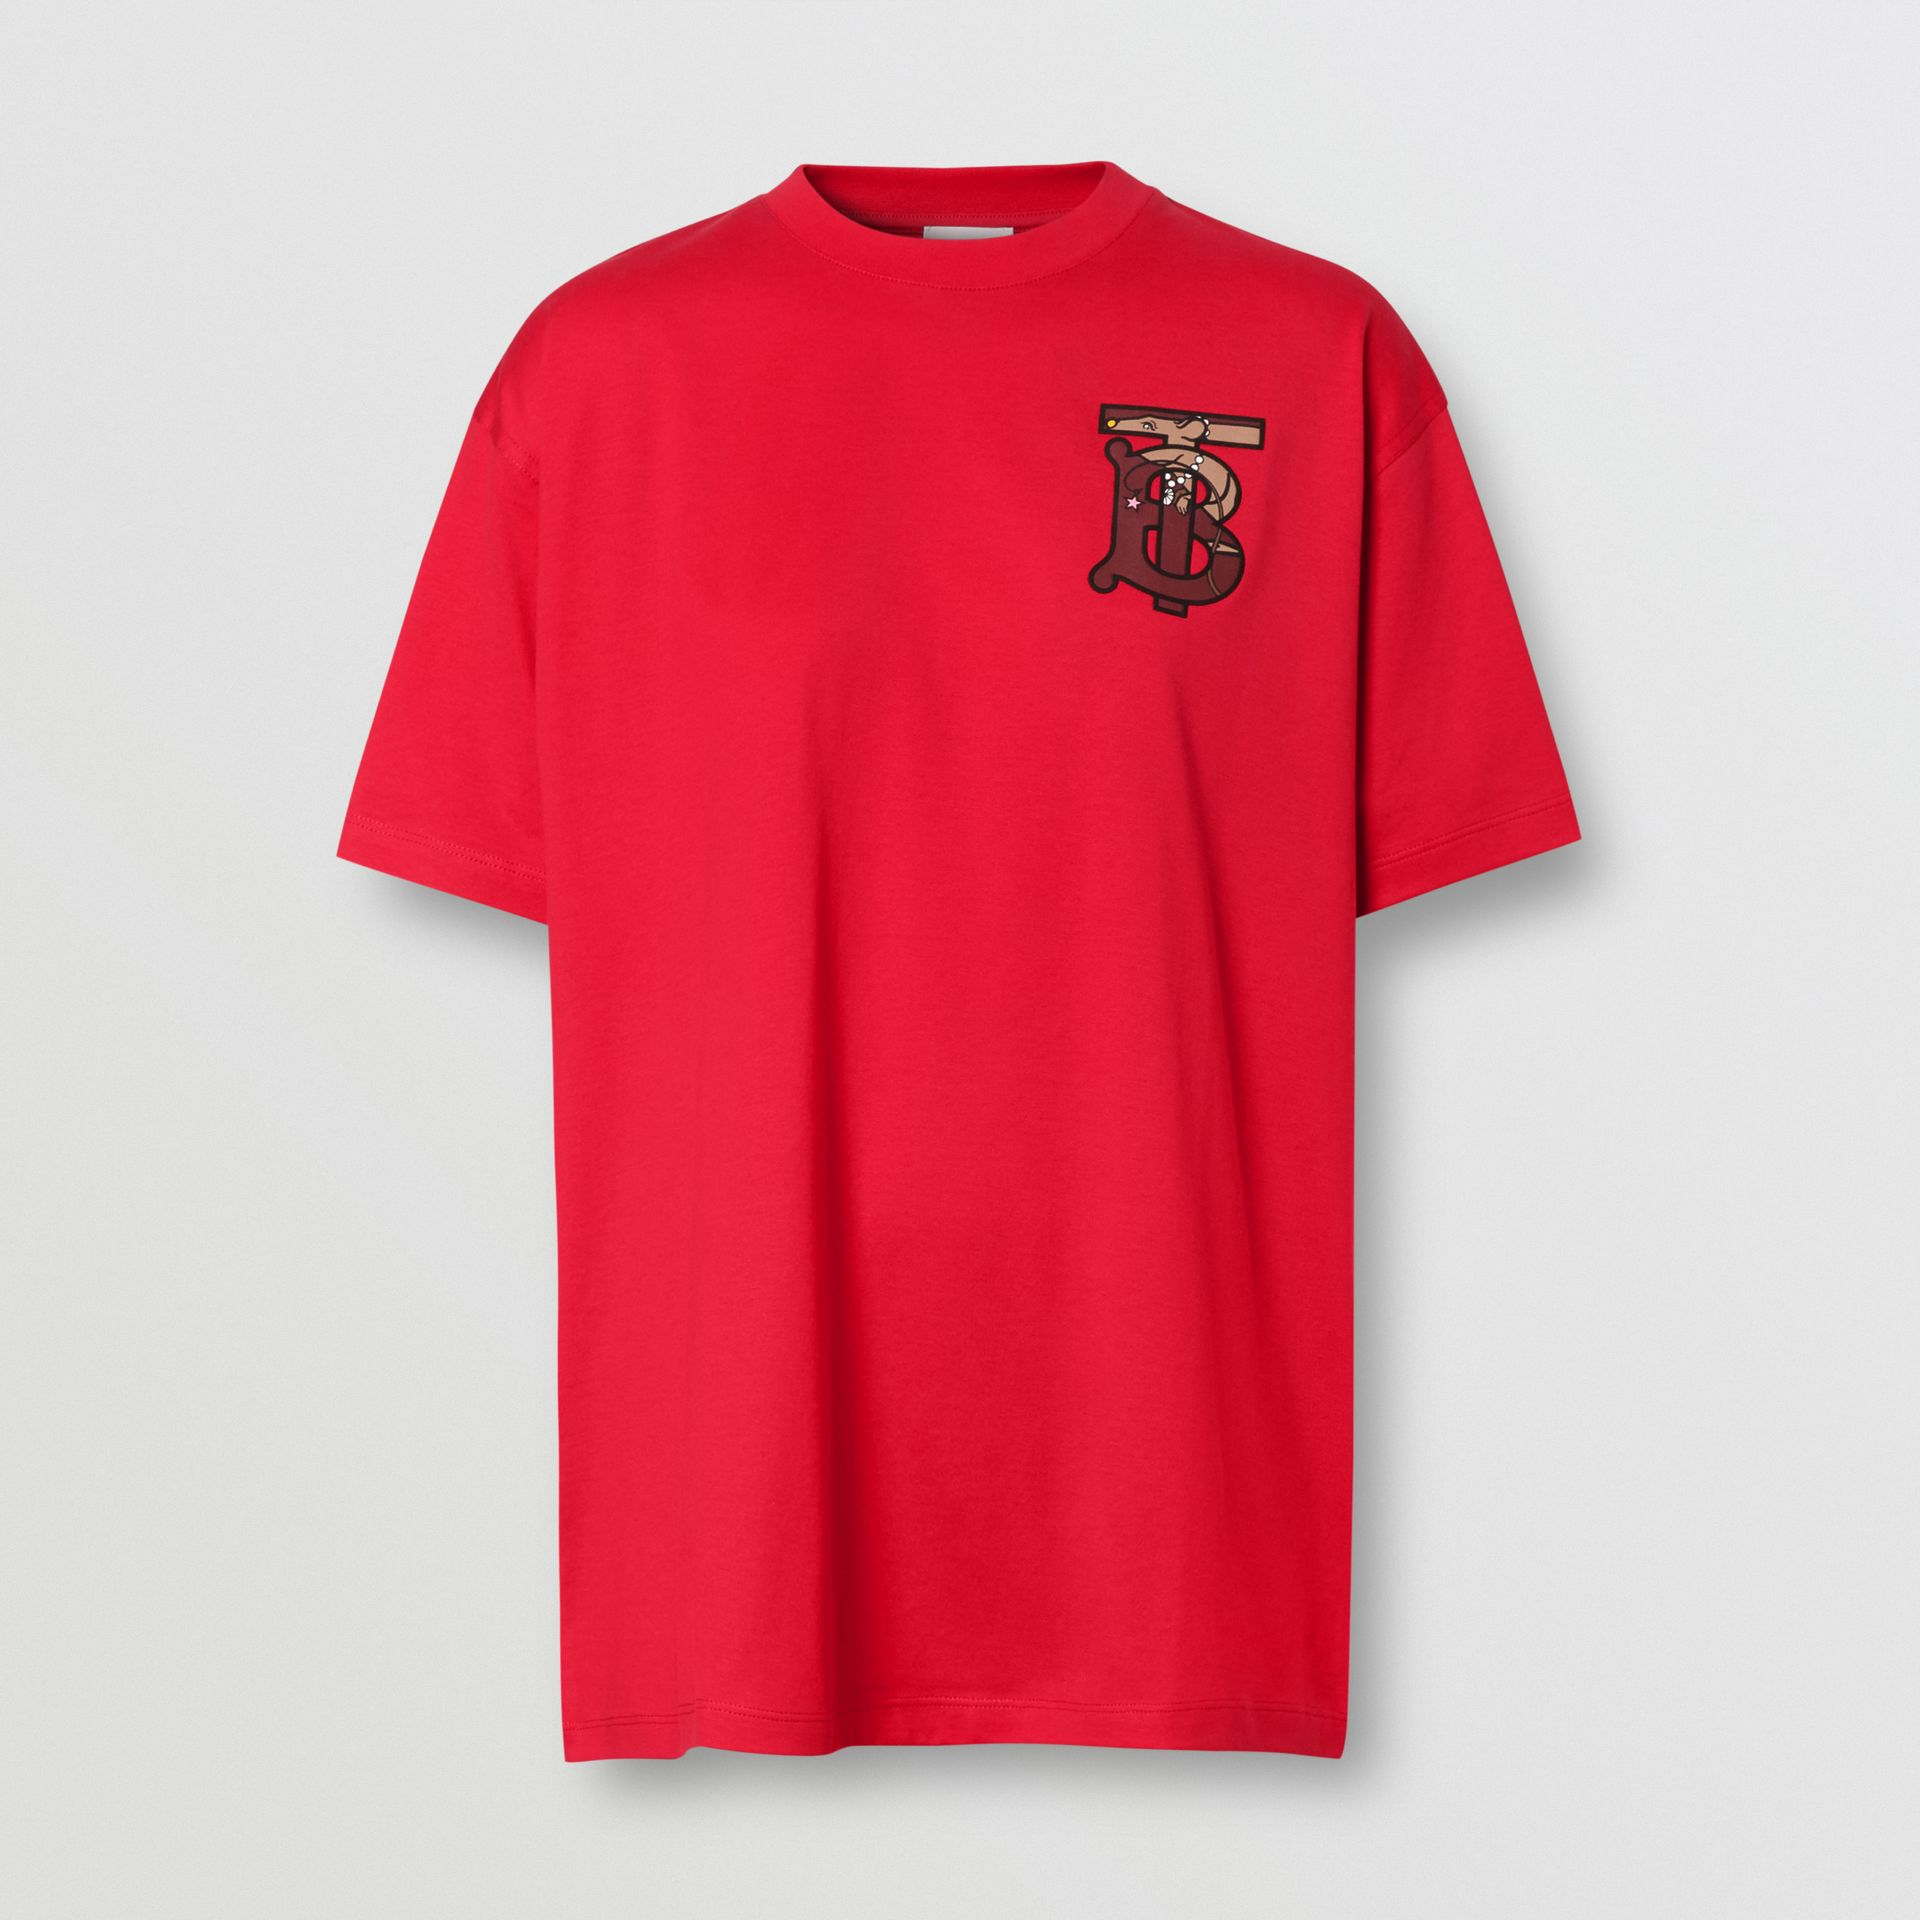 Monogram Motif Cotton Oversized T-shirt in Bright Red - Women | Burberry United Kingdom - gallery image 3